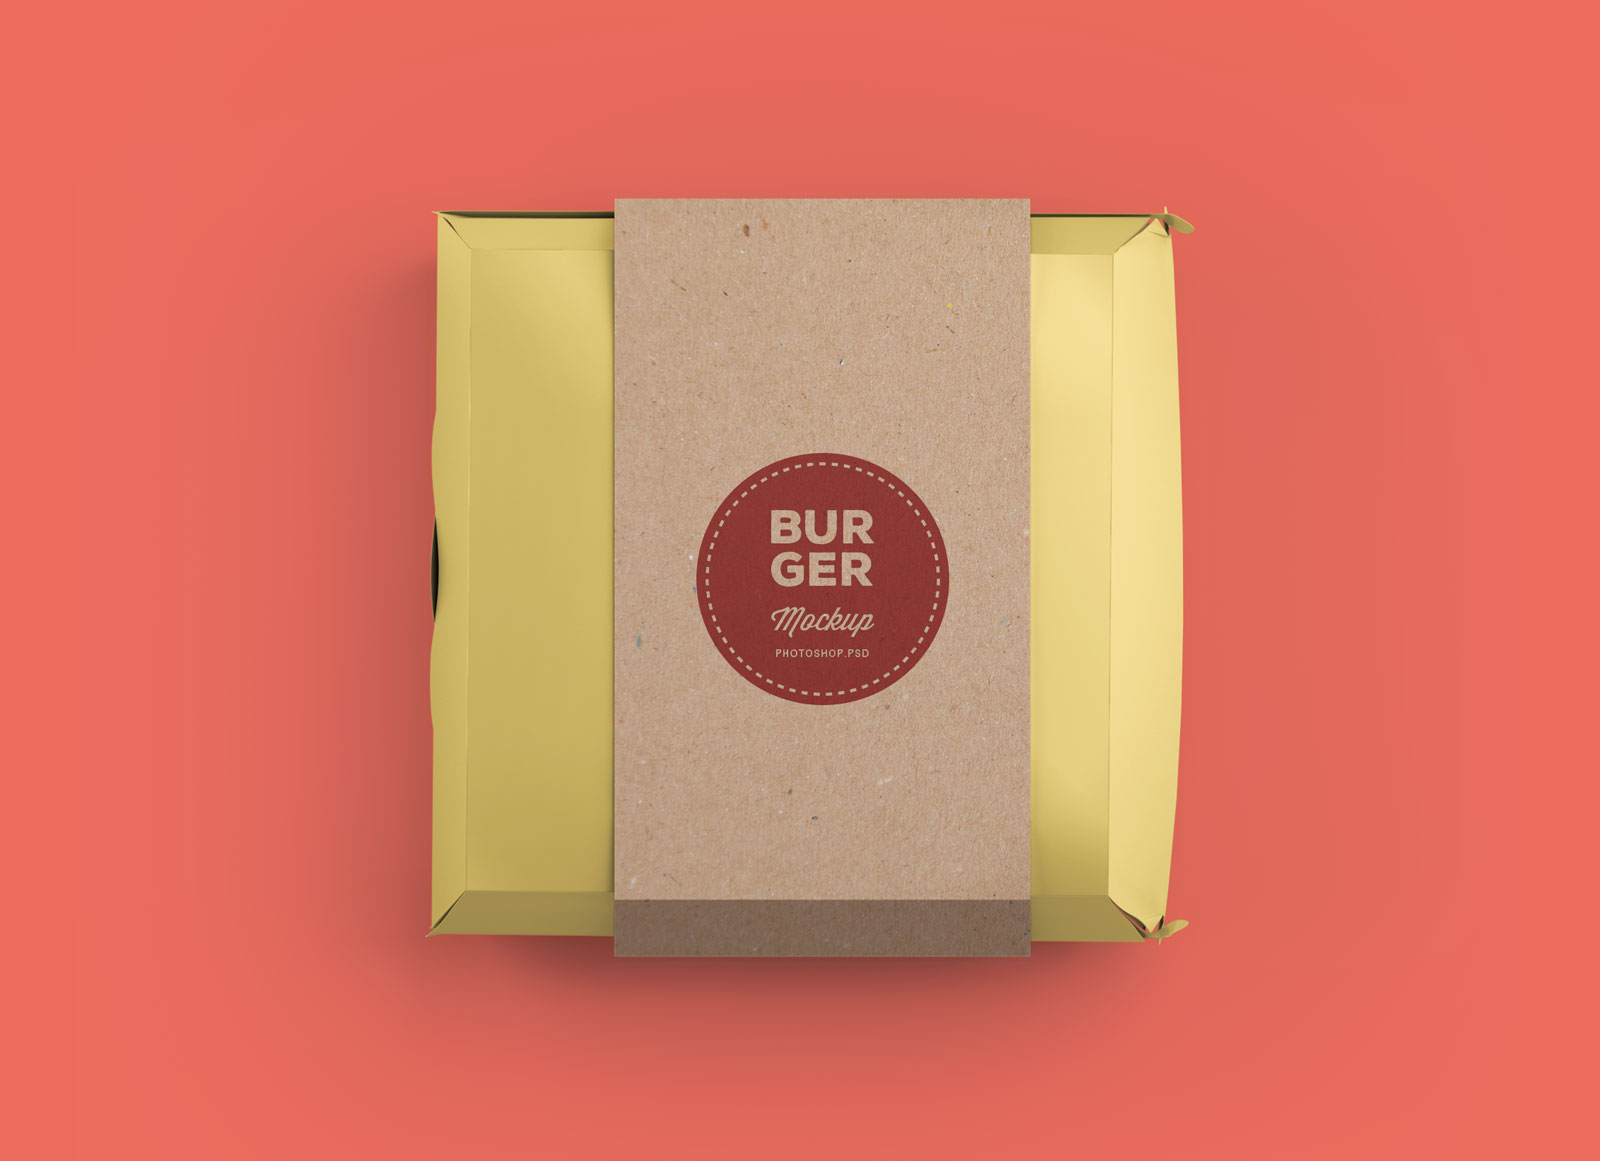 Free-Burger-Box-Packaging-Mockup-PSD